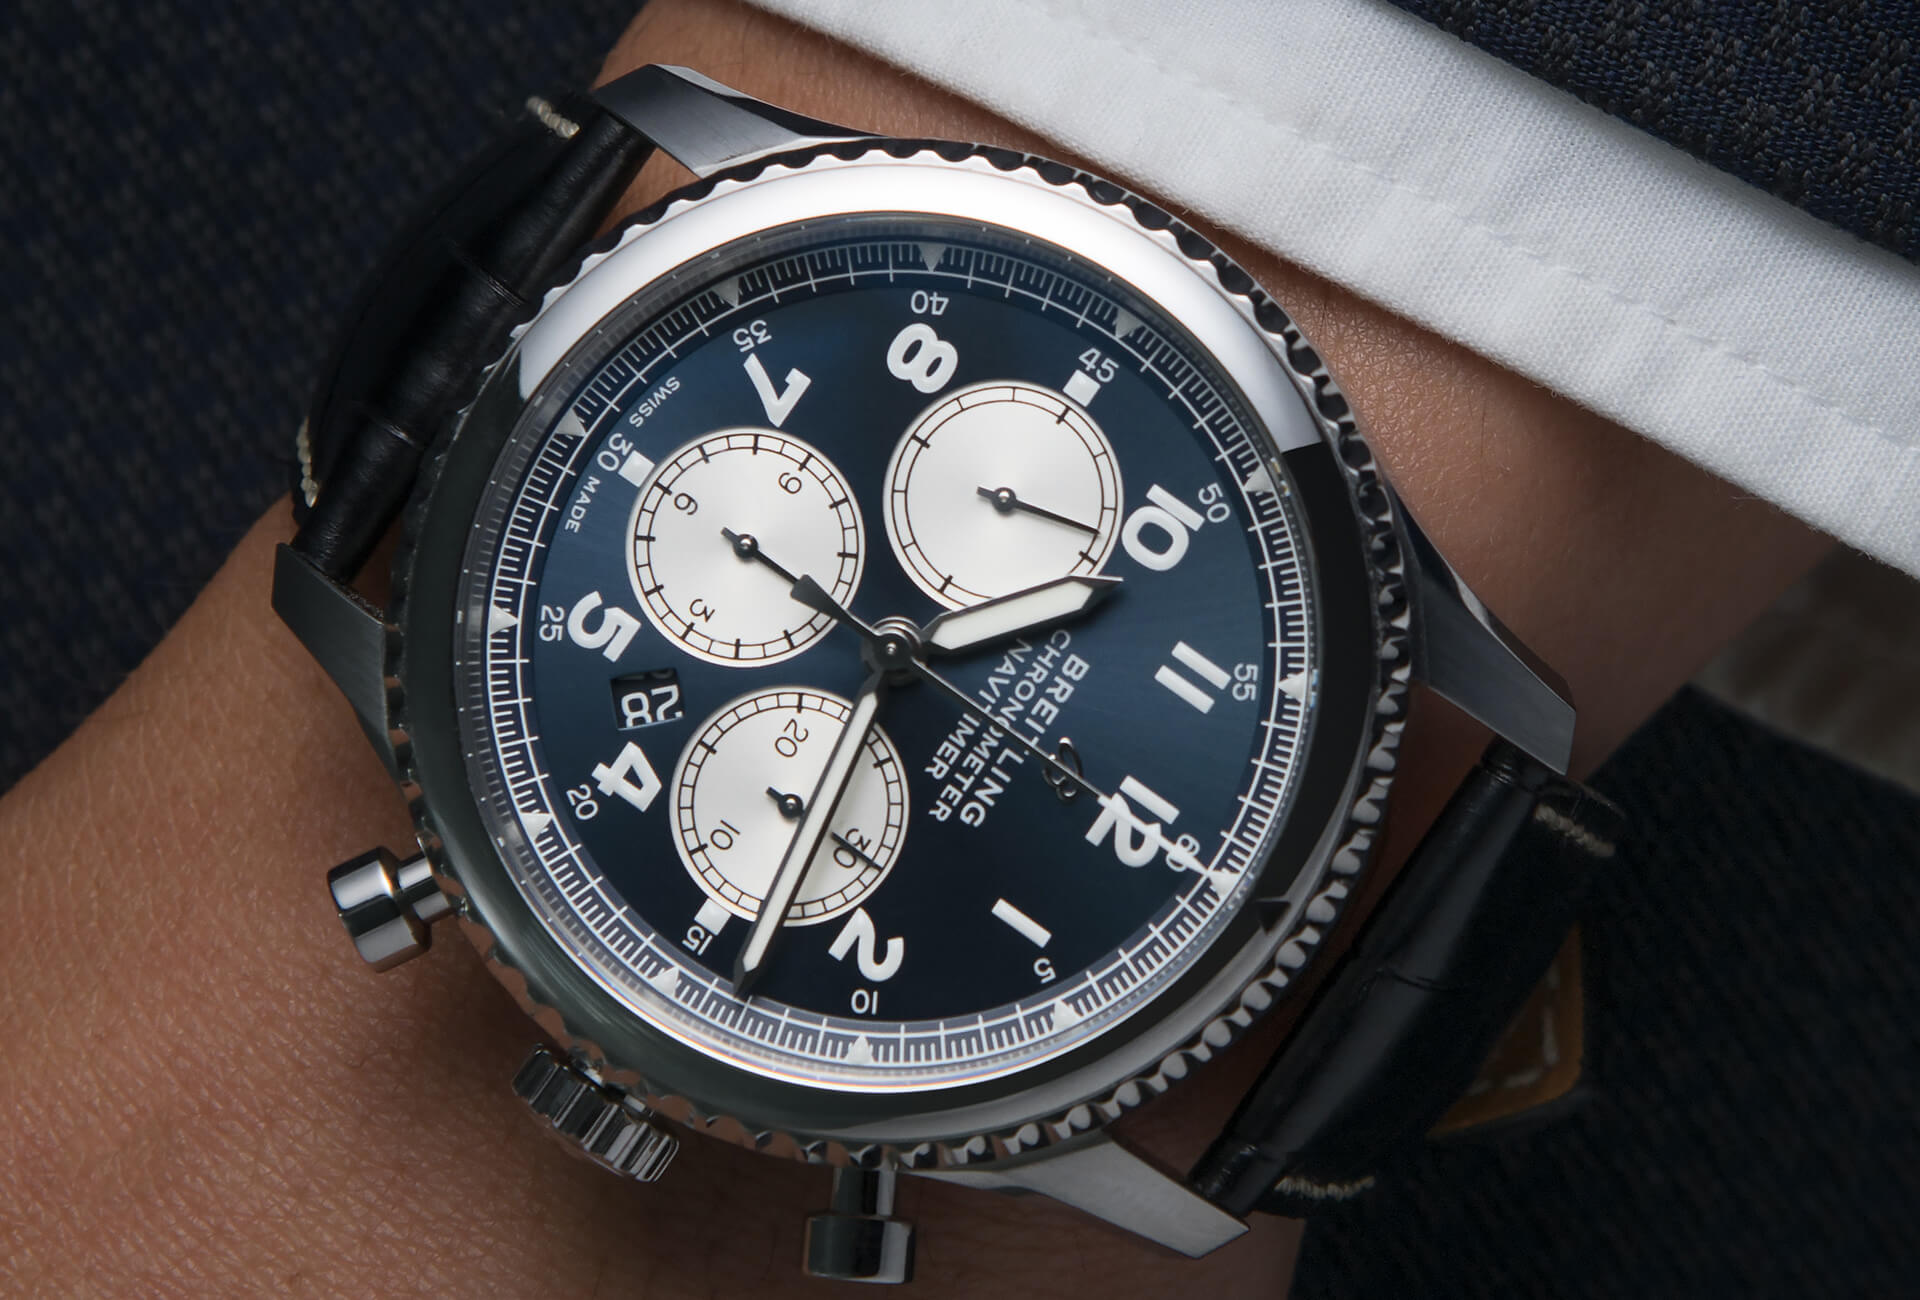 337ee609b6b In the metal: the Breitling Navitimer 8 B01 Chronograph 43 – FHH Journal